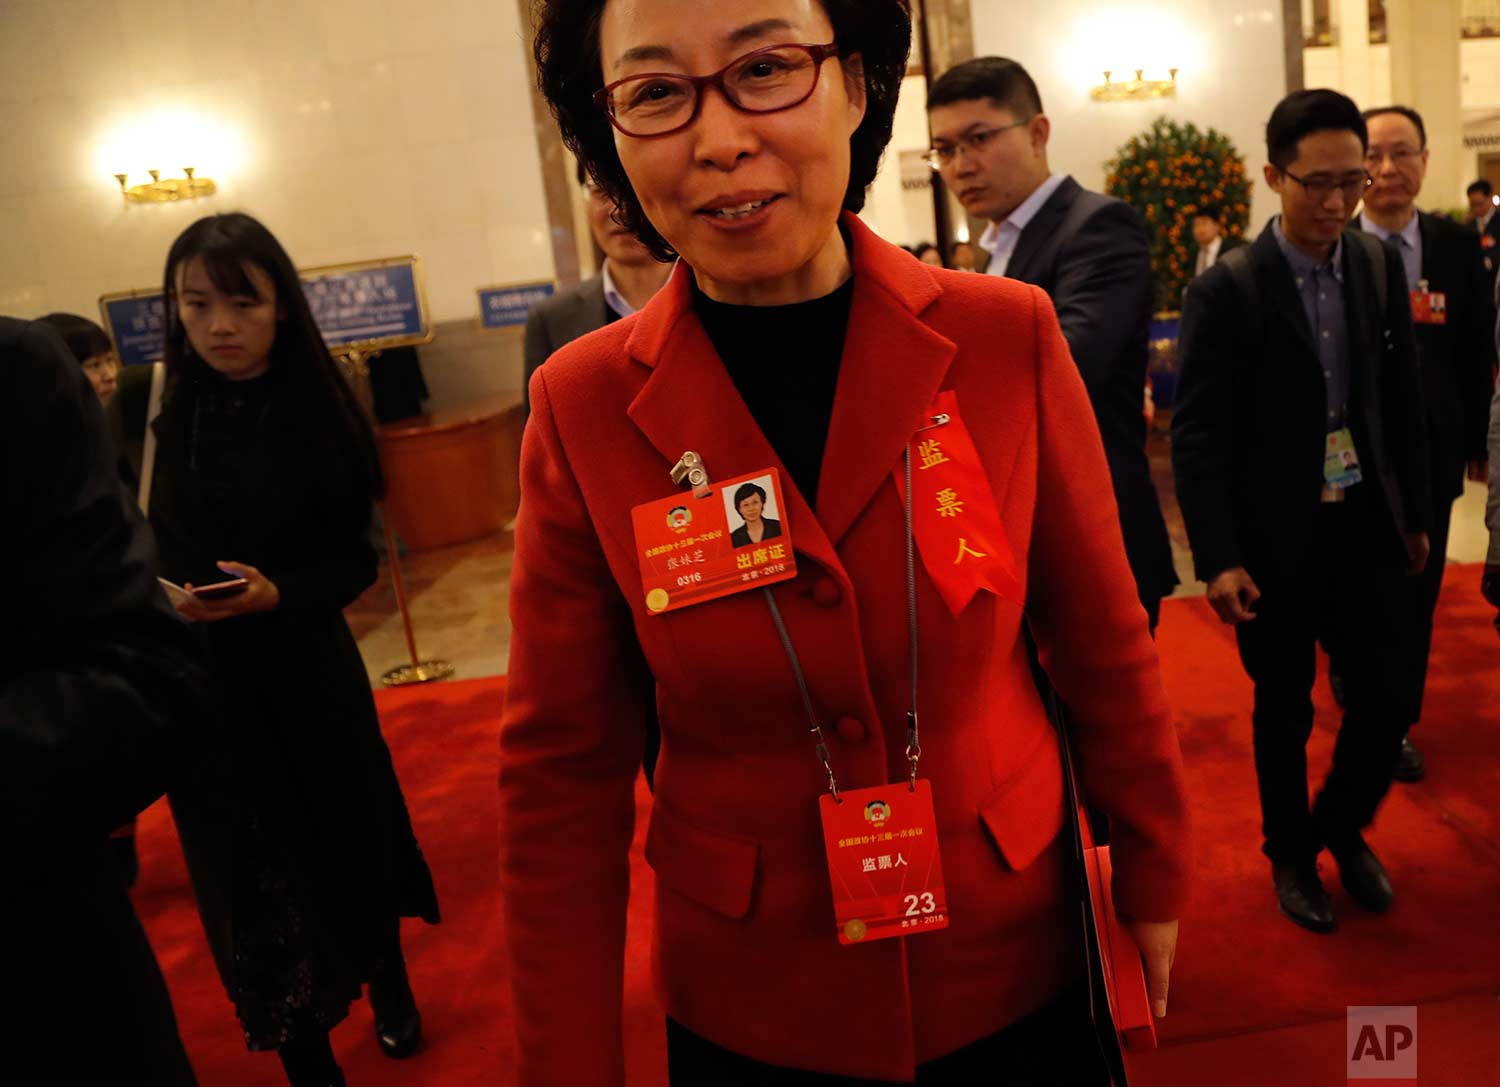 In this Wednesday, March 14, 2018 photo, a delegate in red jacket leaves after attending a plenary session of Chinese People's Political Consultative Conference (CPPCC) at the Great Hall of the People in Beijing. (AP Photo/Aijaz Rahi)